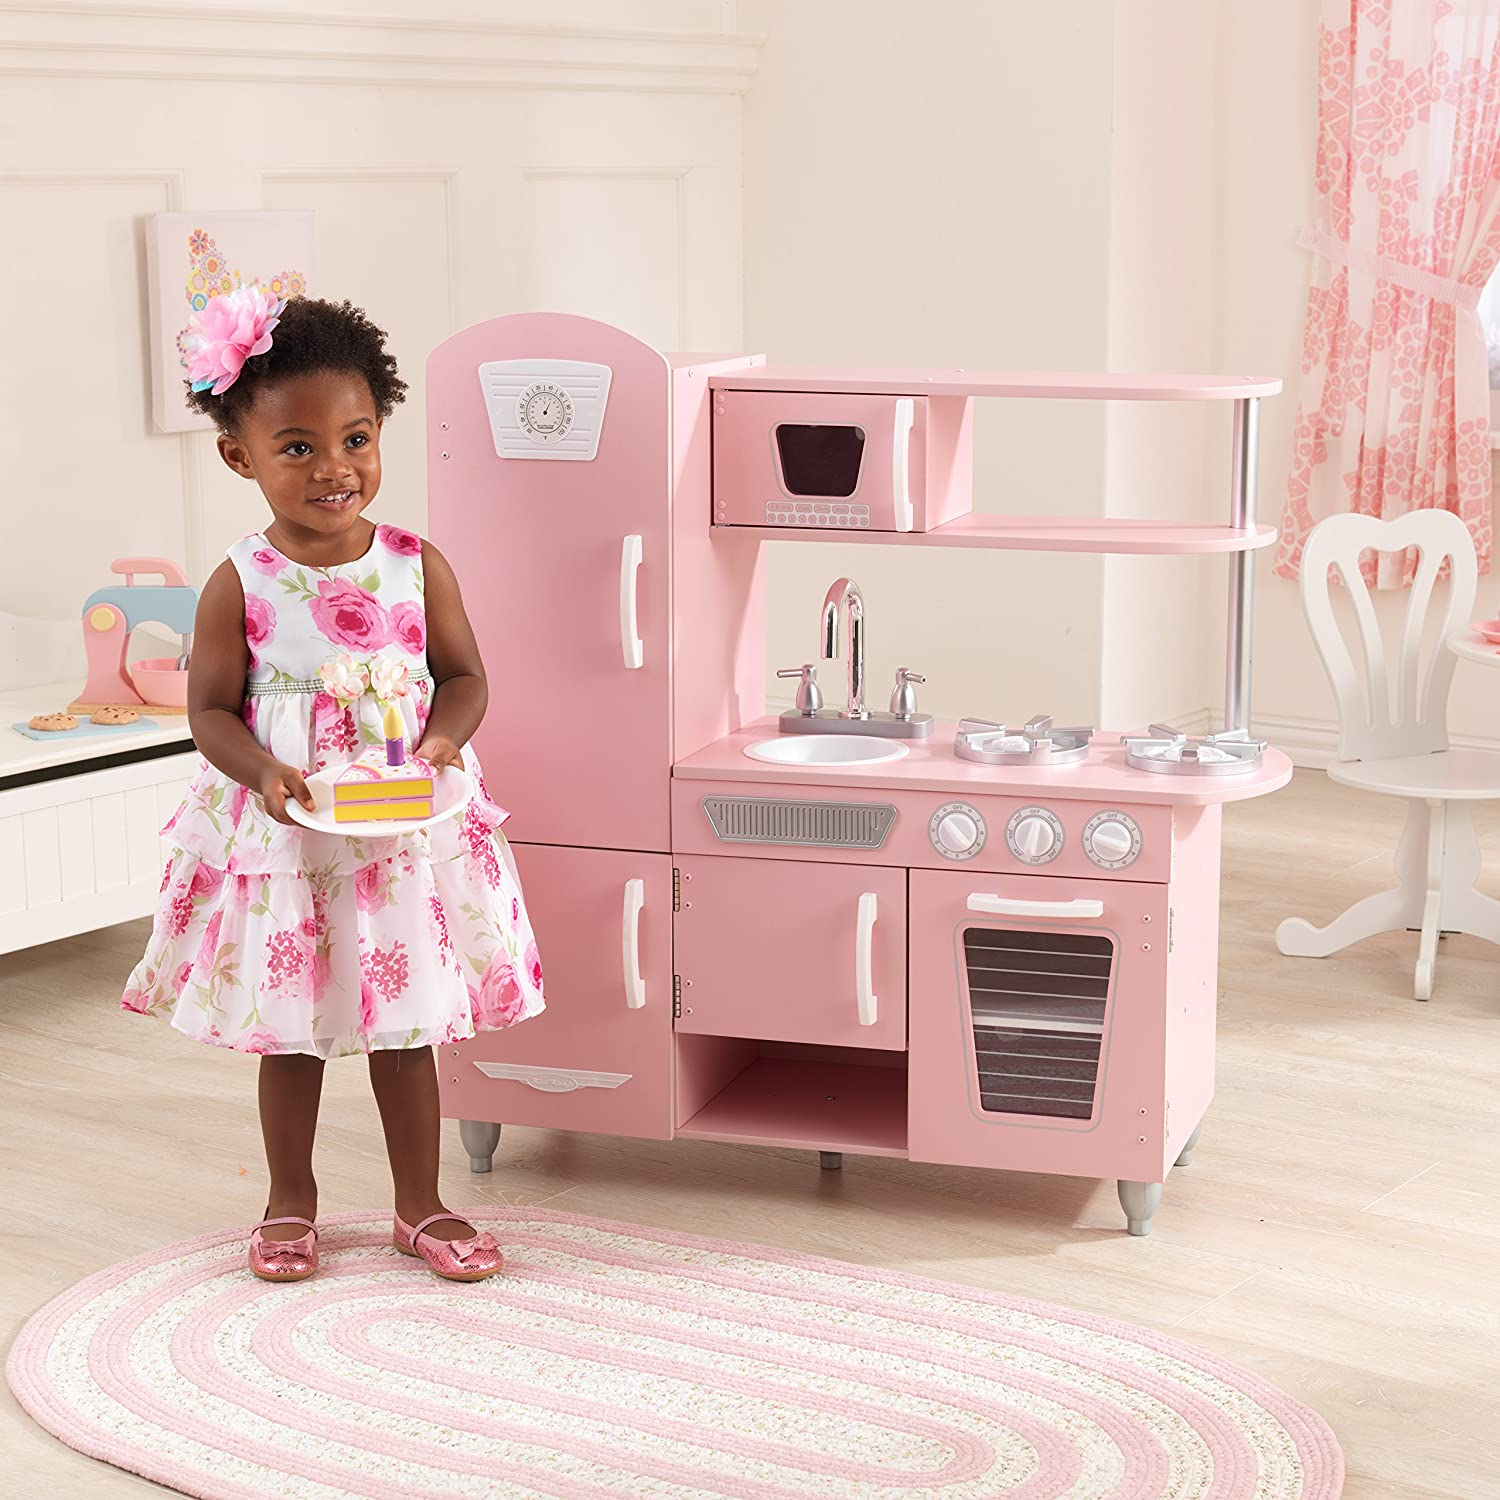 pink vintage kitchen – claimsclinic.co